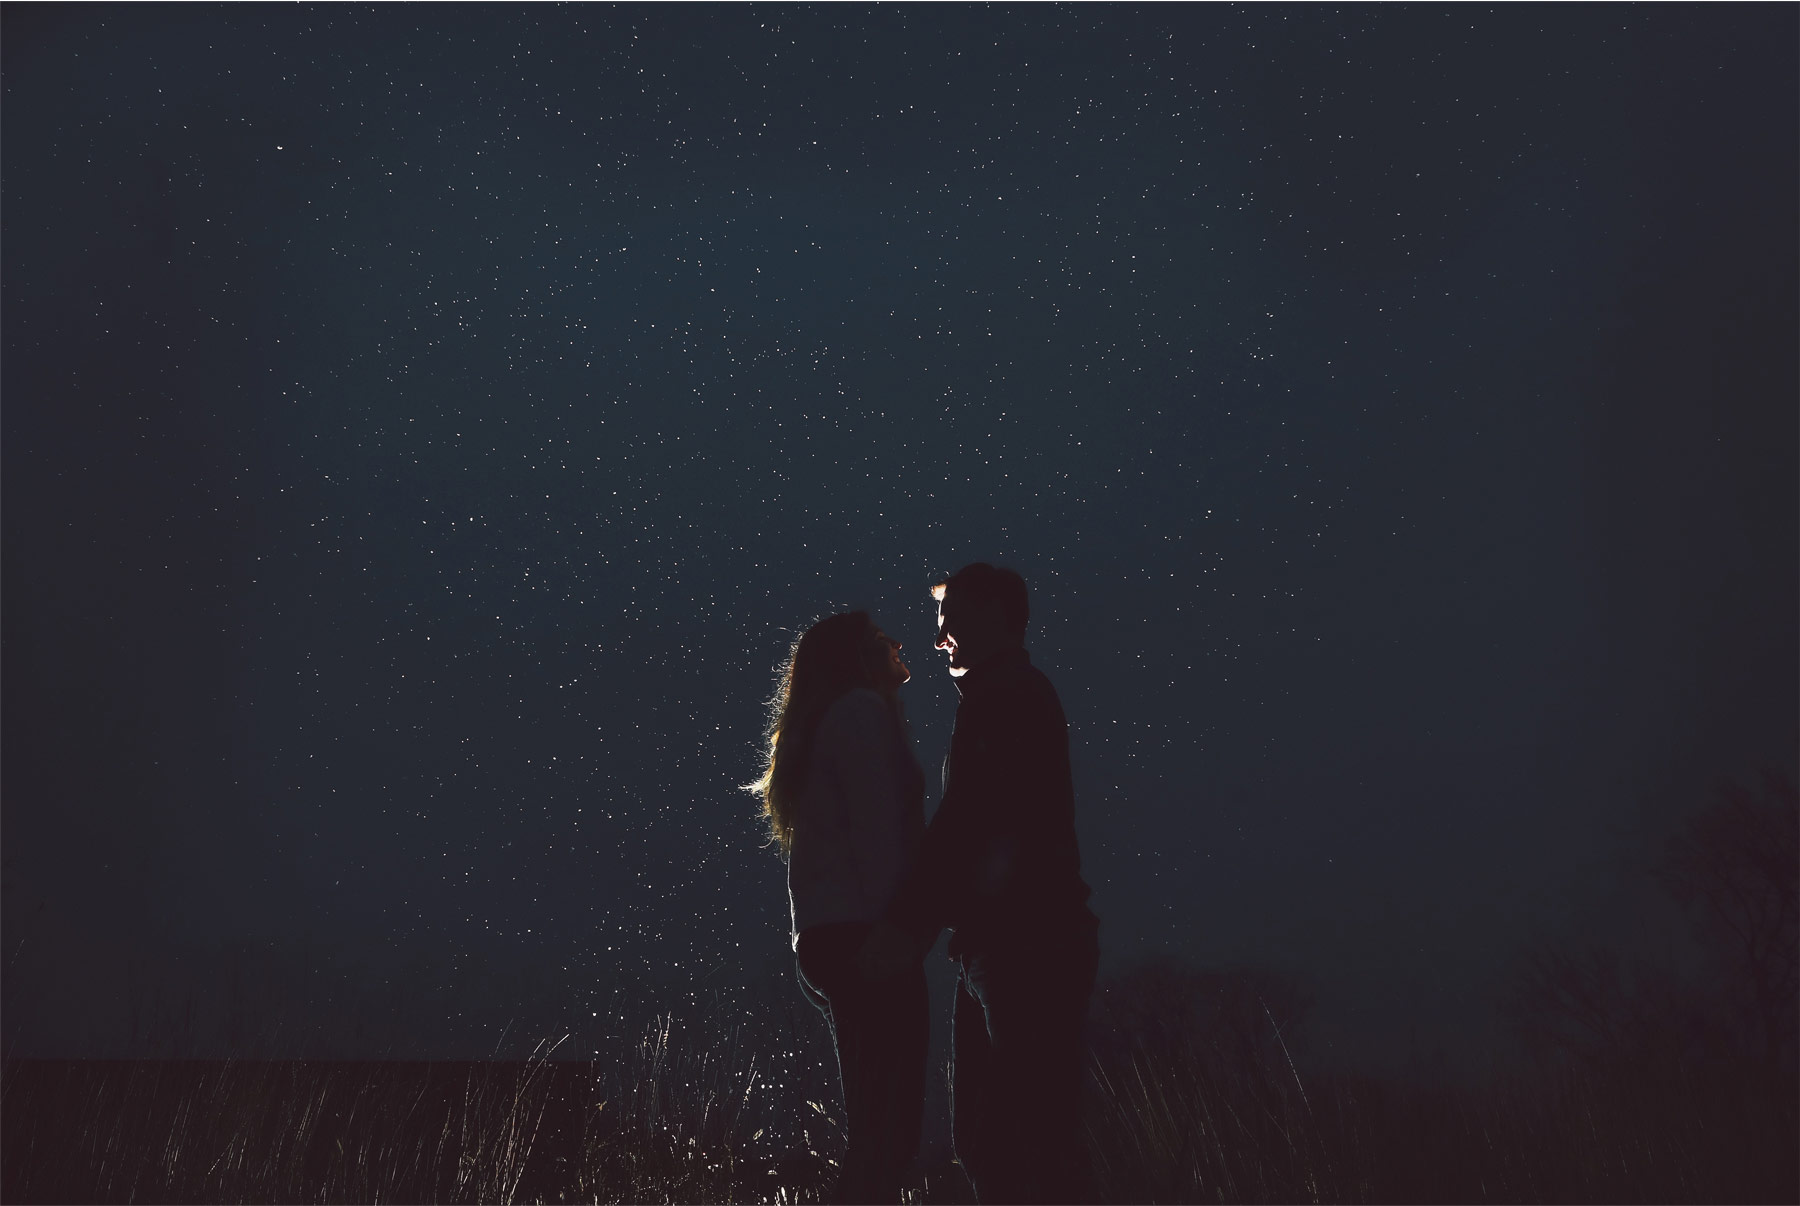 08-Vick-Photography-Engagement-Session-Winter-Outdoor-Night-Stars-Couple-Veronica-and-Tyler.jpg